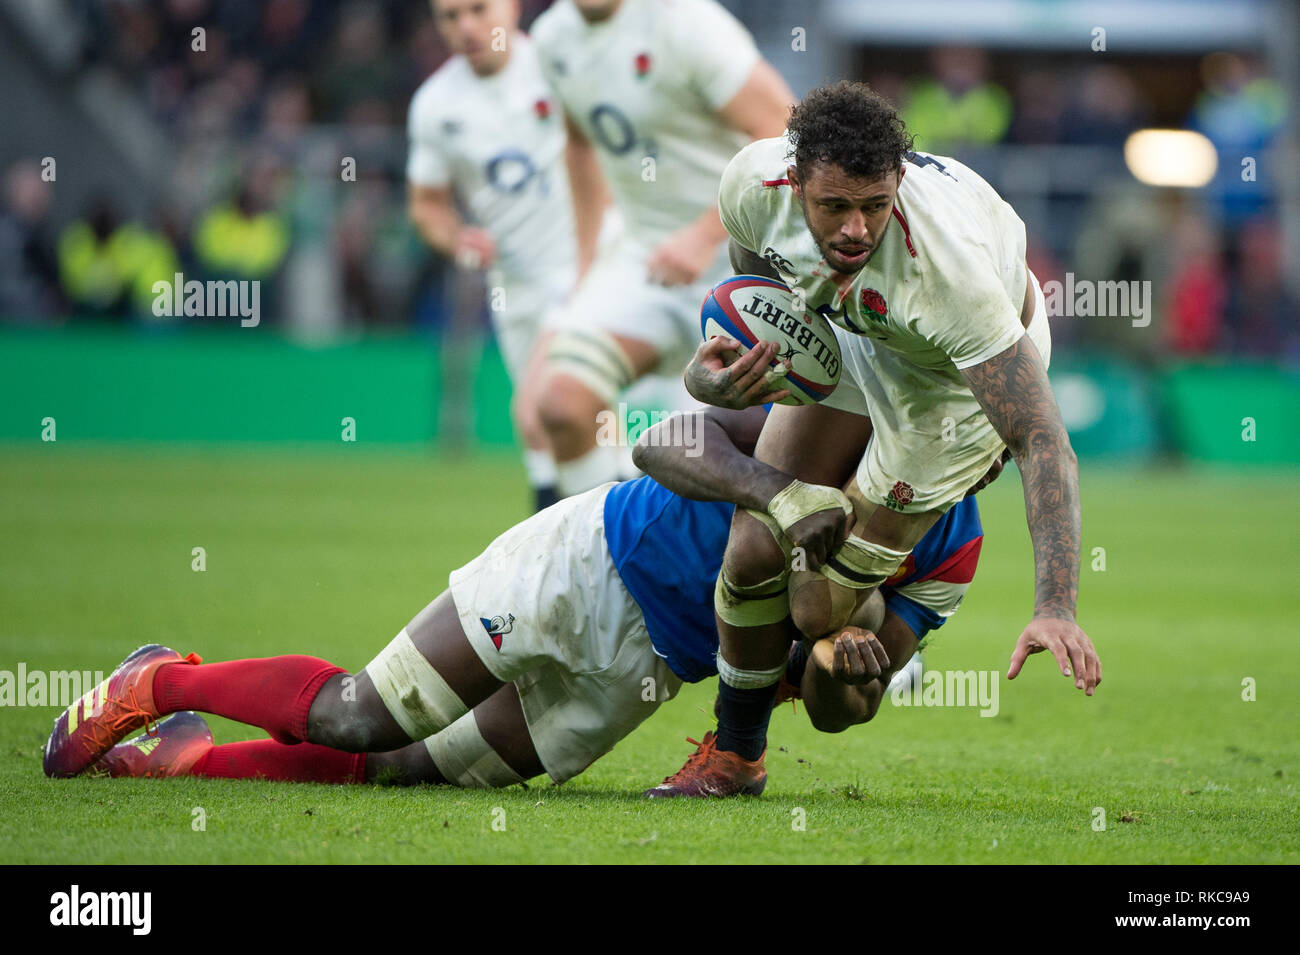 Twickenham, United Kingdom. 7th February, Courtnt Lawes tackled by Yacouba CAMERA, during the England vs France, 2019 Guinness Six Nations Rugby Match   played at  the  RFU Stadium, Twickenham, England,  © PeterSPURRIER: Intersport Images Credit: Peter SPURRIER/Alamy Live News Stock Photo